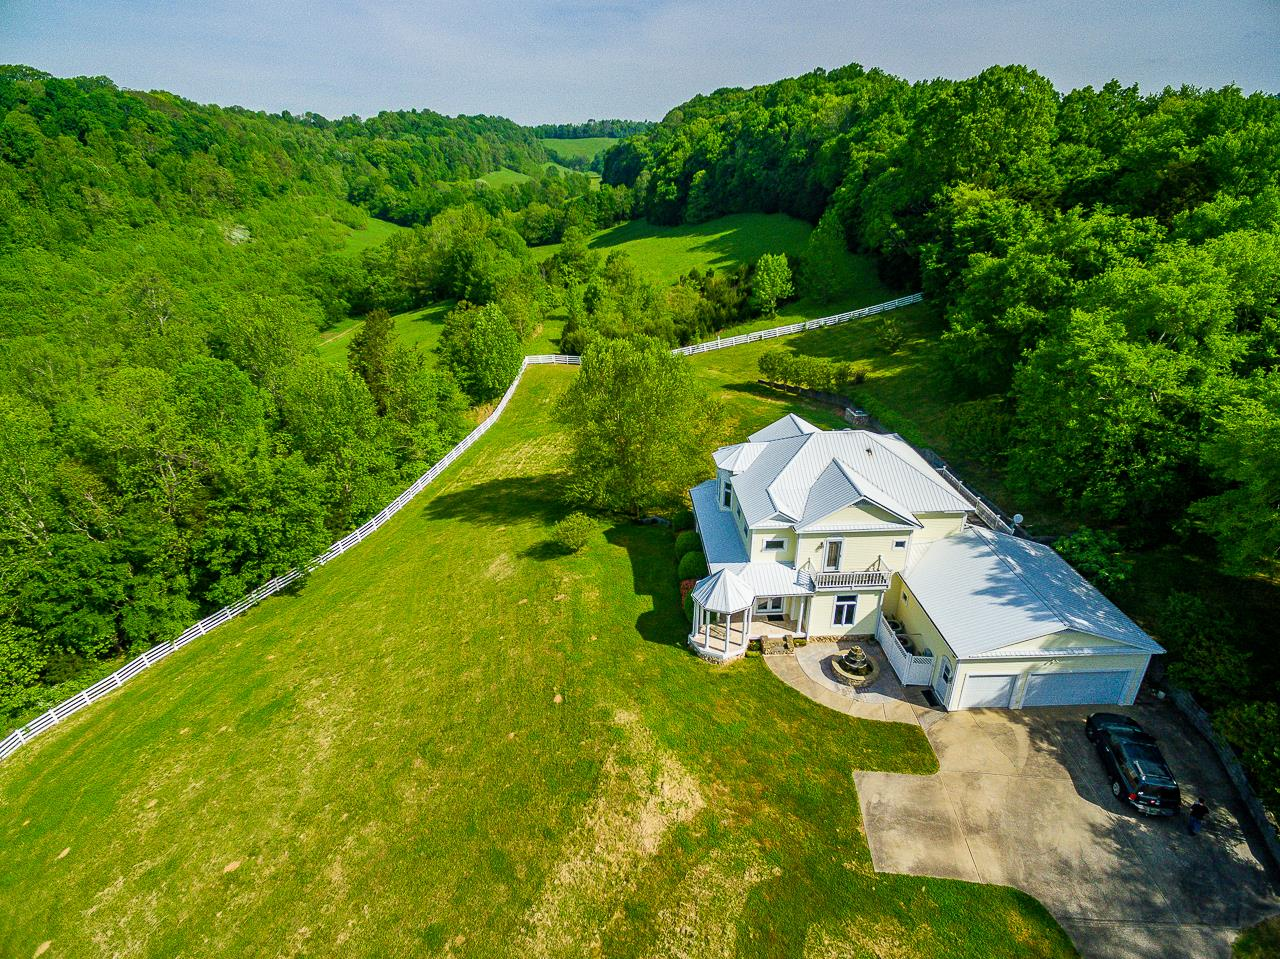 417 Chicken Creek Rd, Frankewing, TN 38459 - Frankewing, TN real estate listing